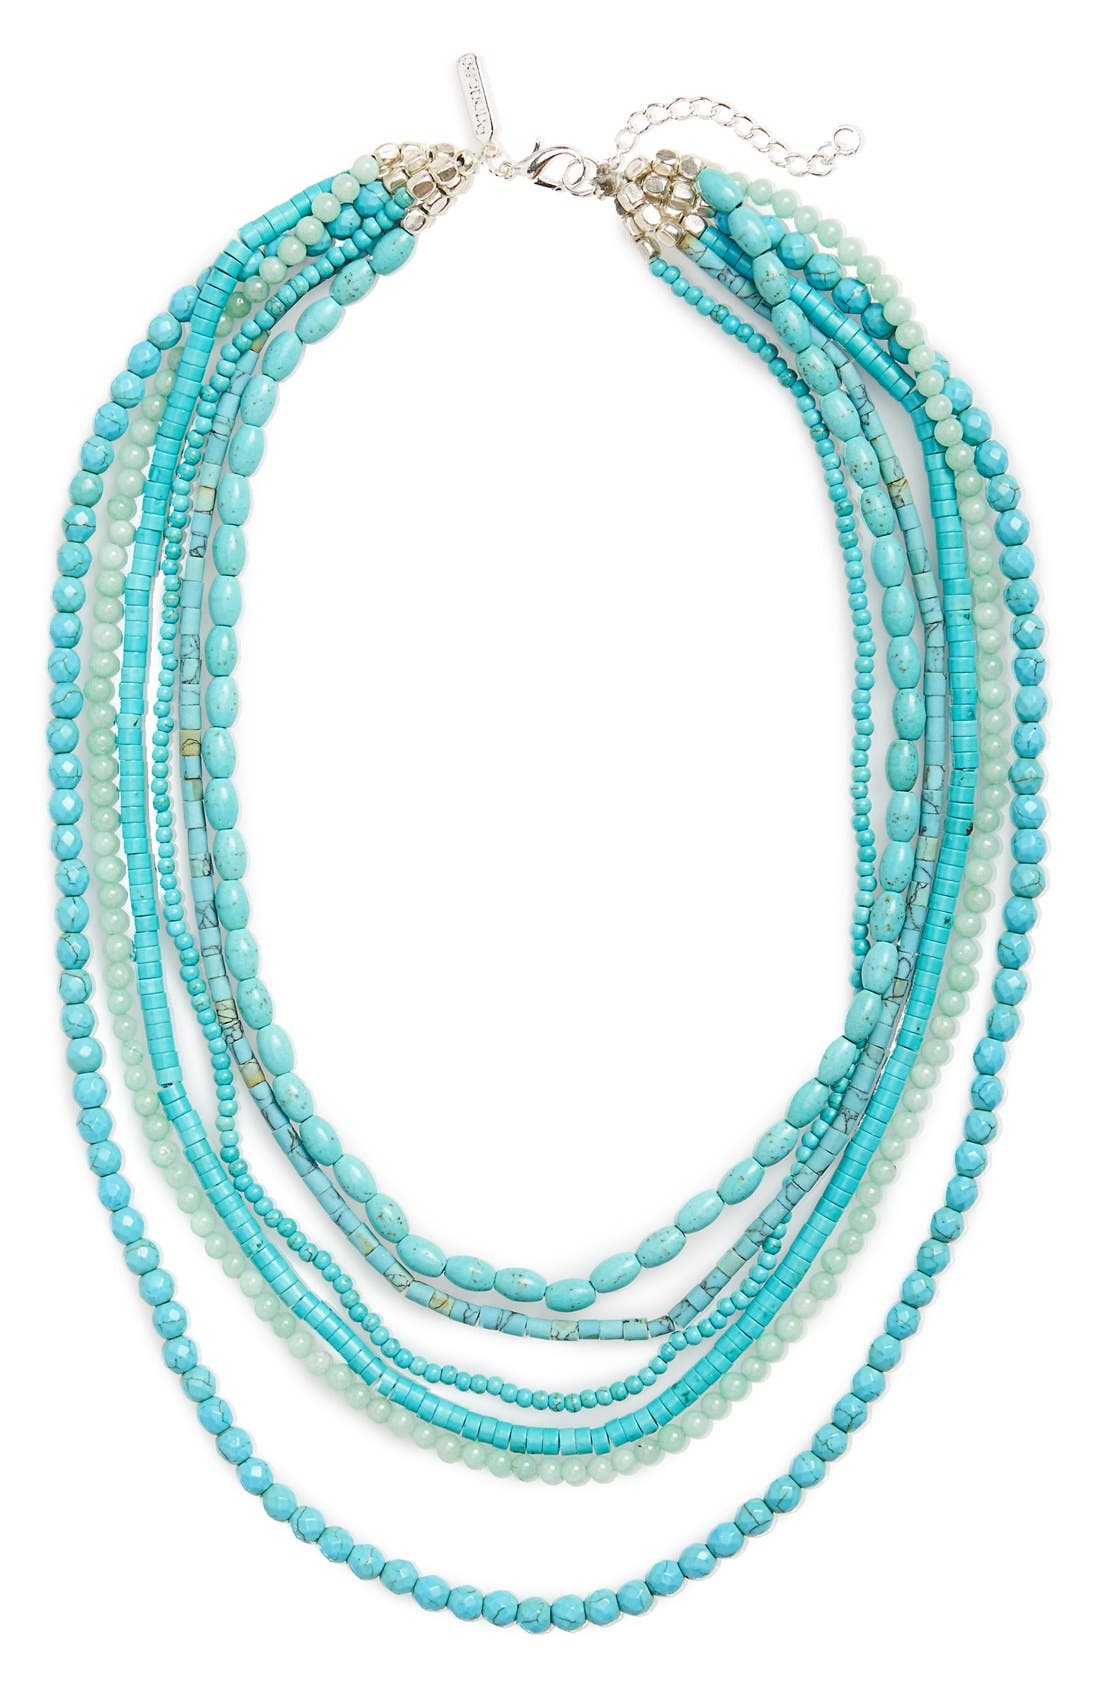 Main Image - Panacea Multistrand Statement Necklace